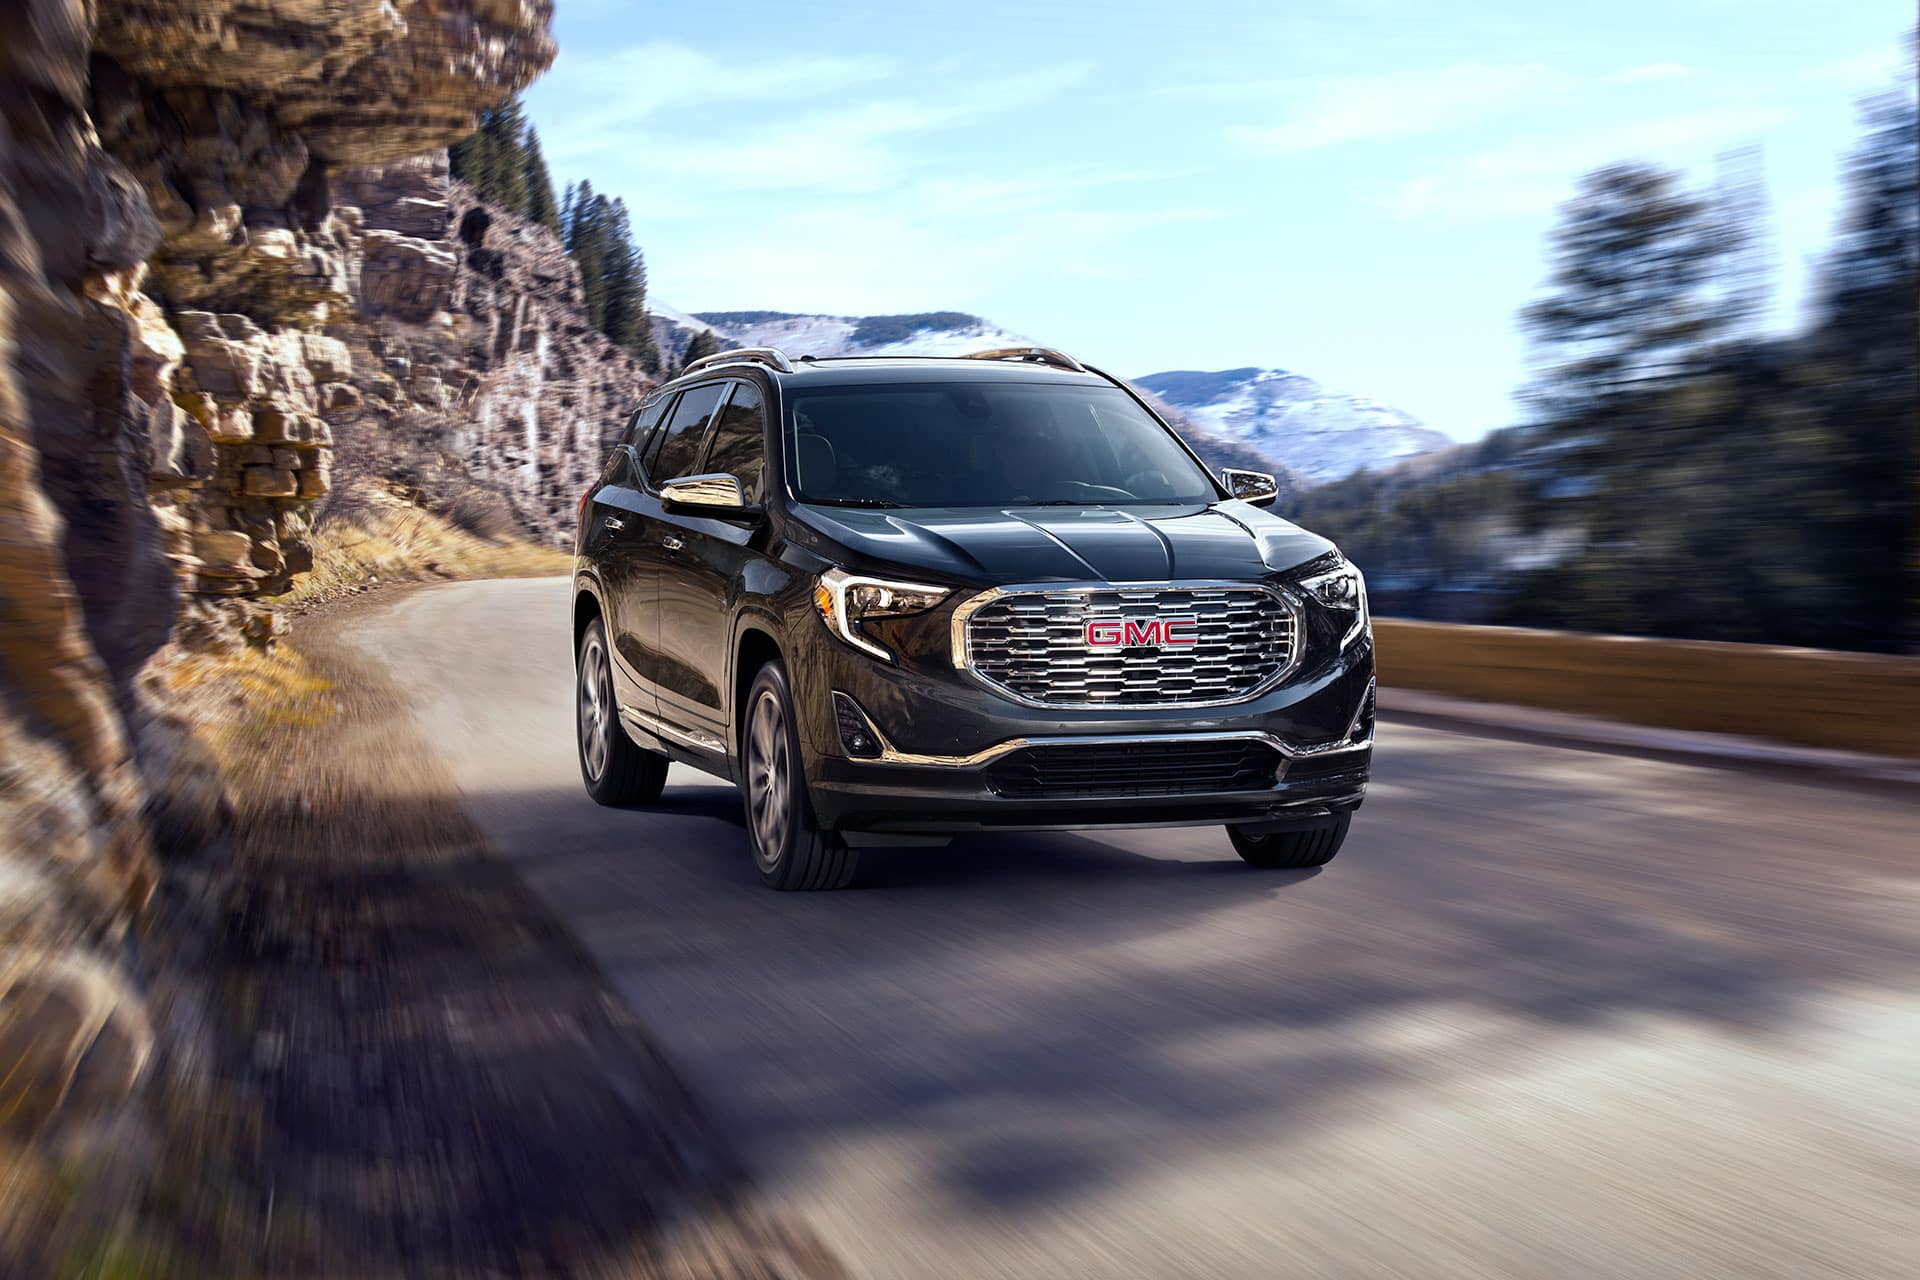 "2021 GMC Terrain Denali Exterior in Graphite Gray Metallic with (RT7) 19"" Ultra-Bright Machined Aluminum Wheels; 3/4 Passengers side Front; Road shot/motion; Mountains in background; Vail, Colorado Location."